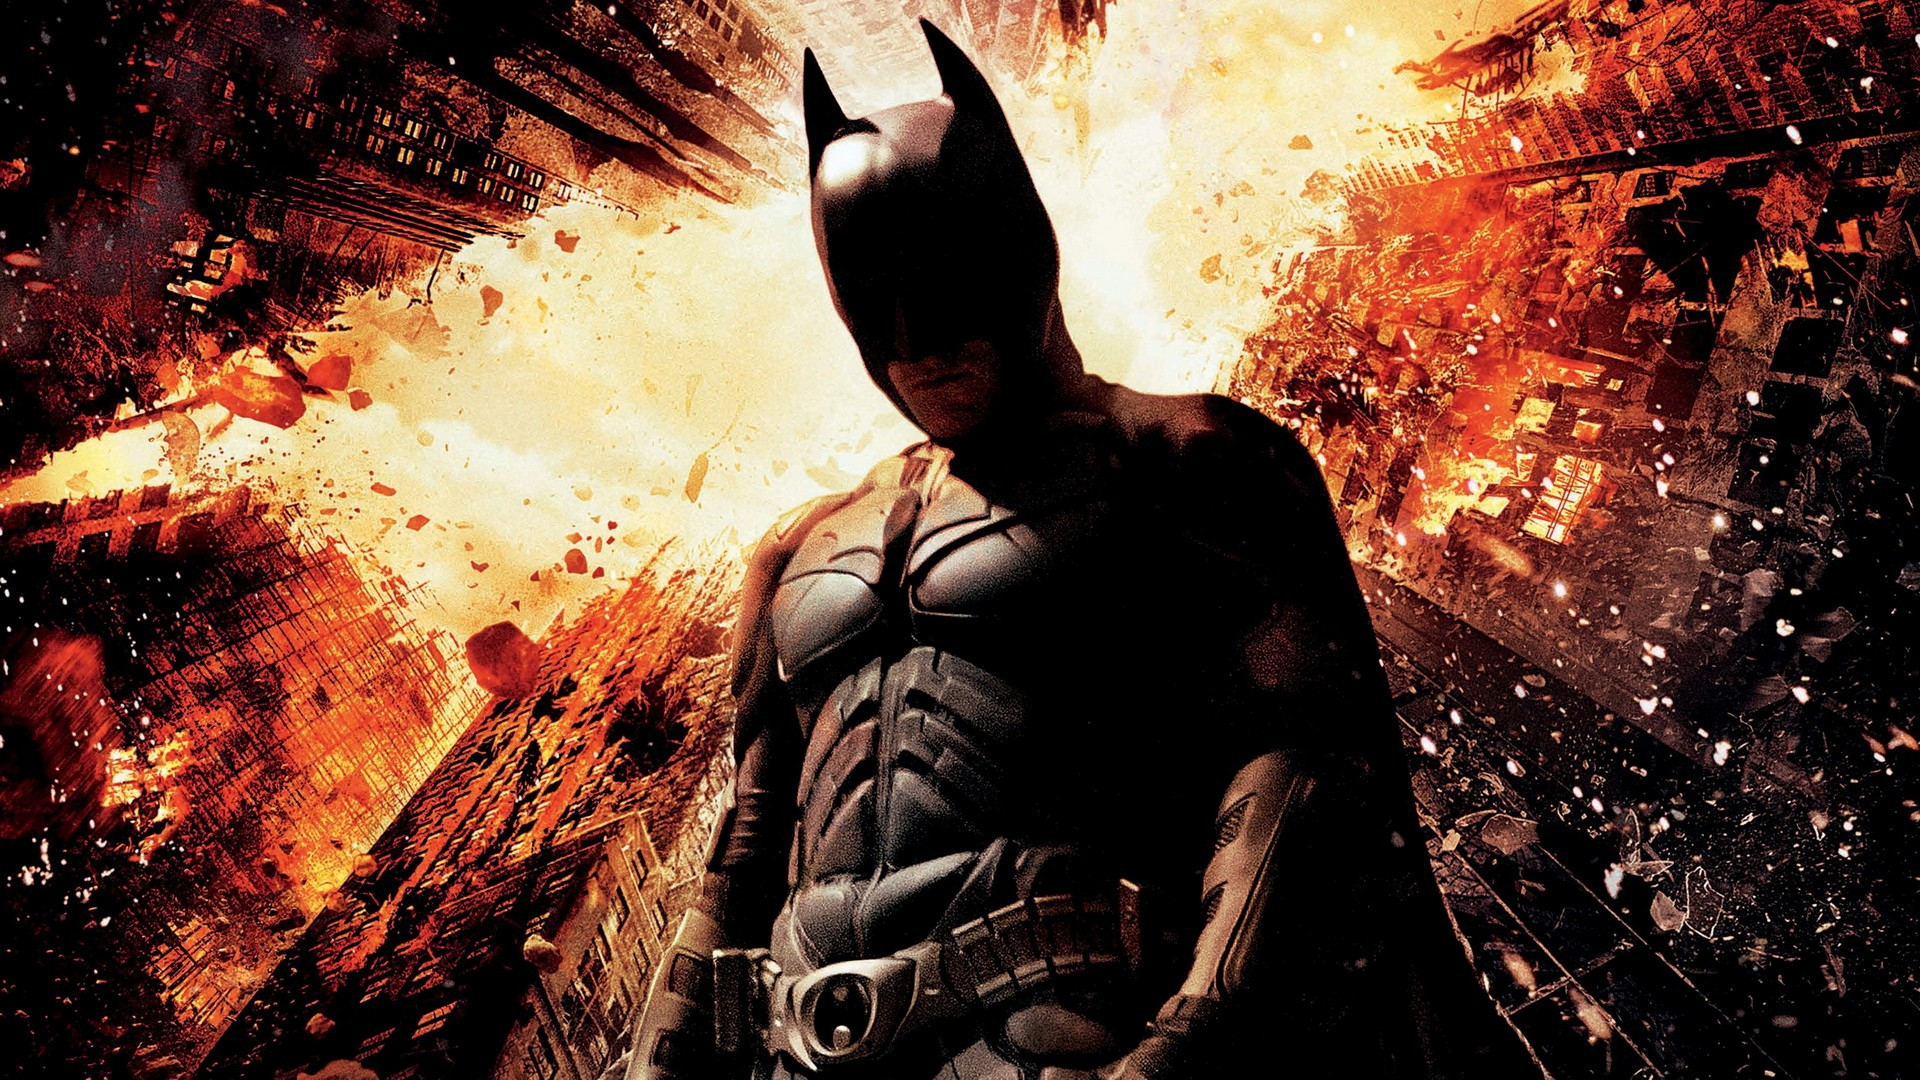 Superheroes Christian Bale The Dark Knight Rises Wallpaper